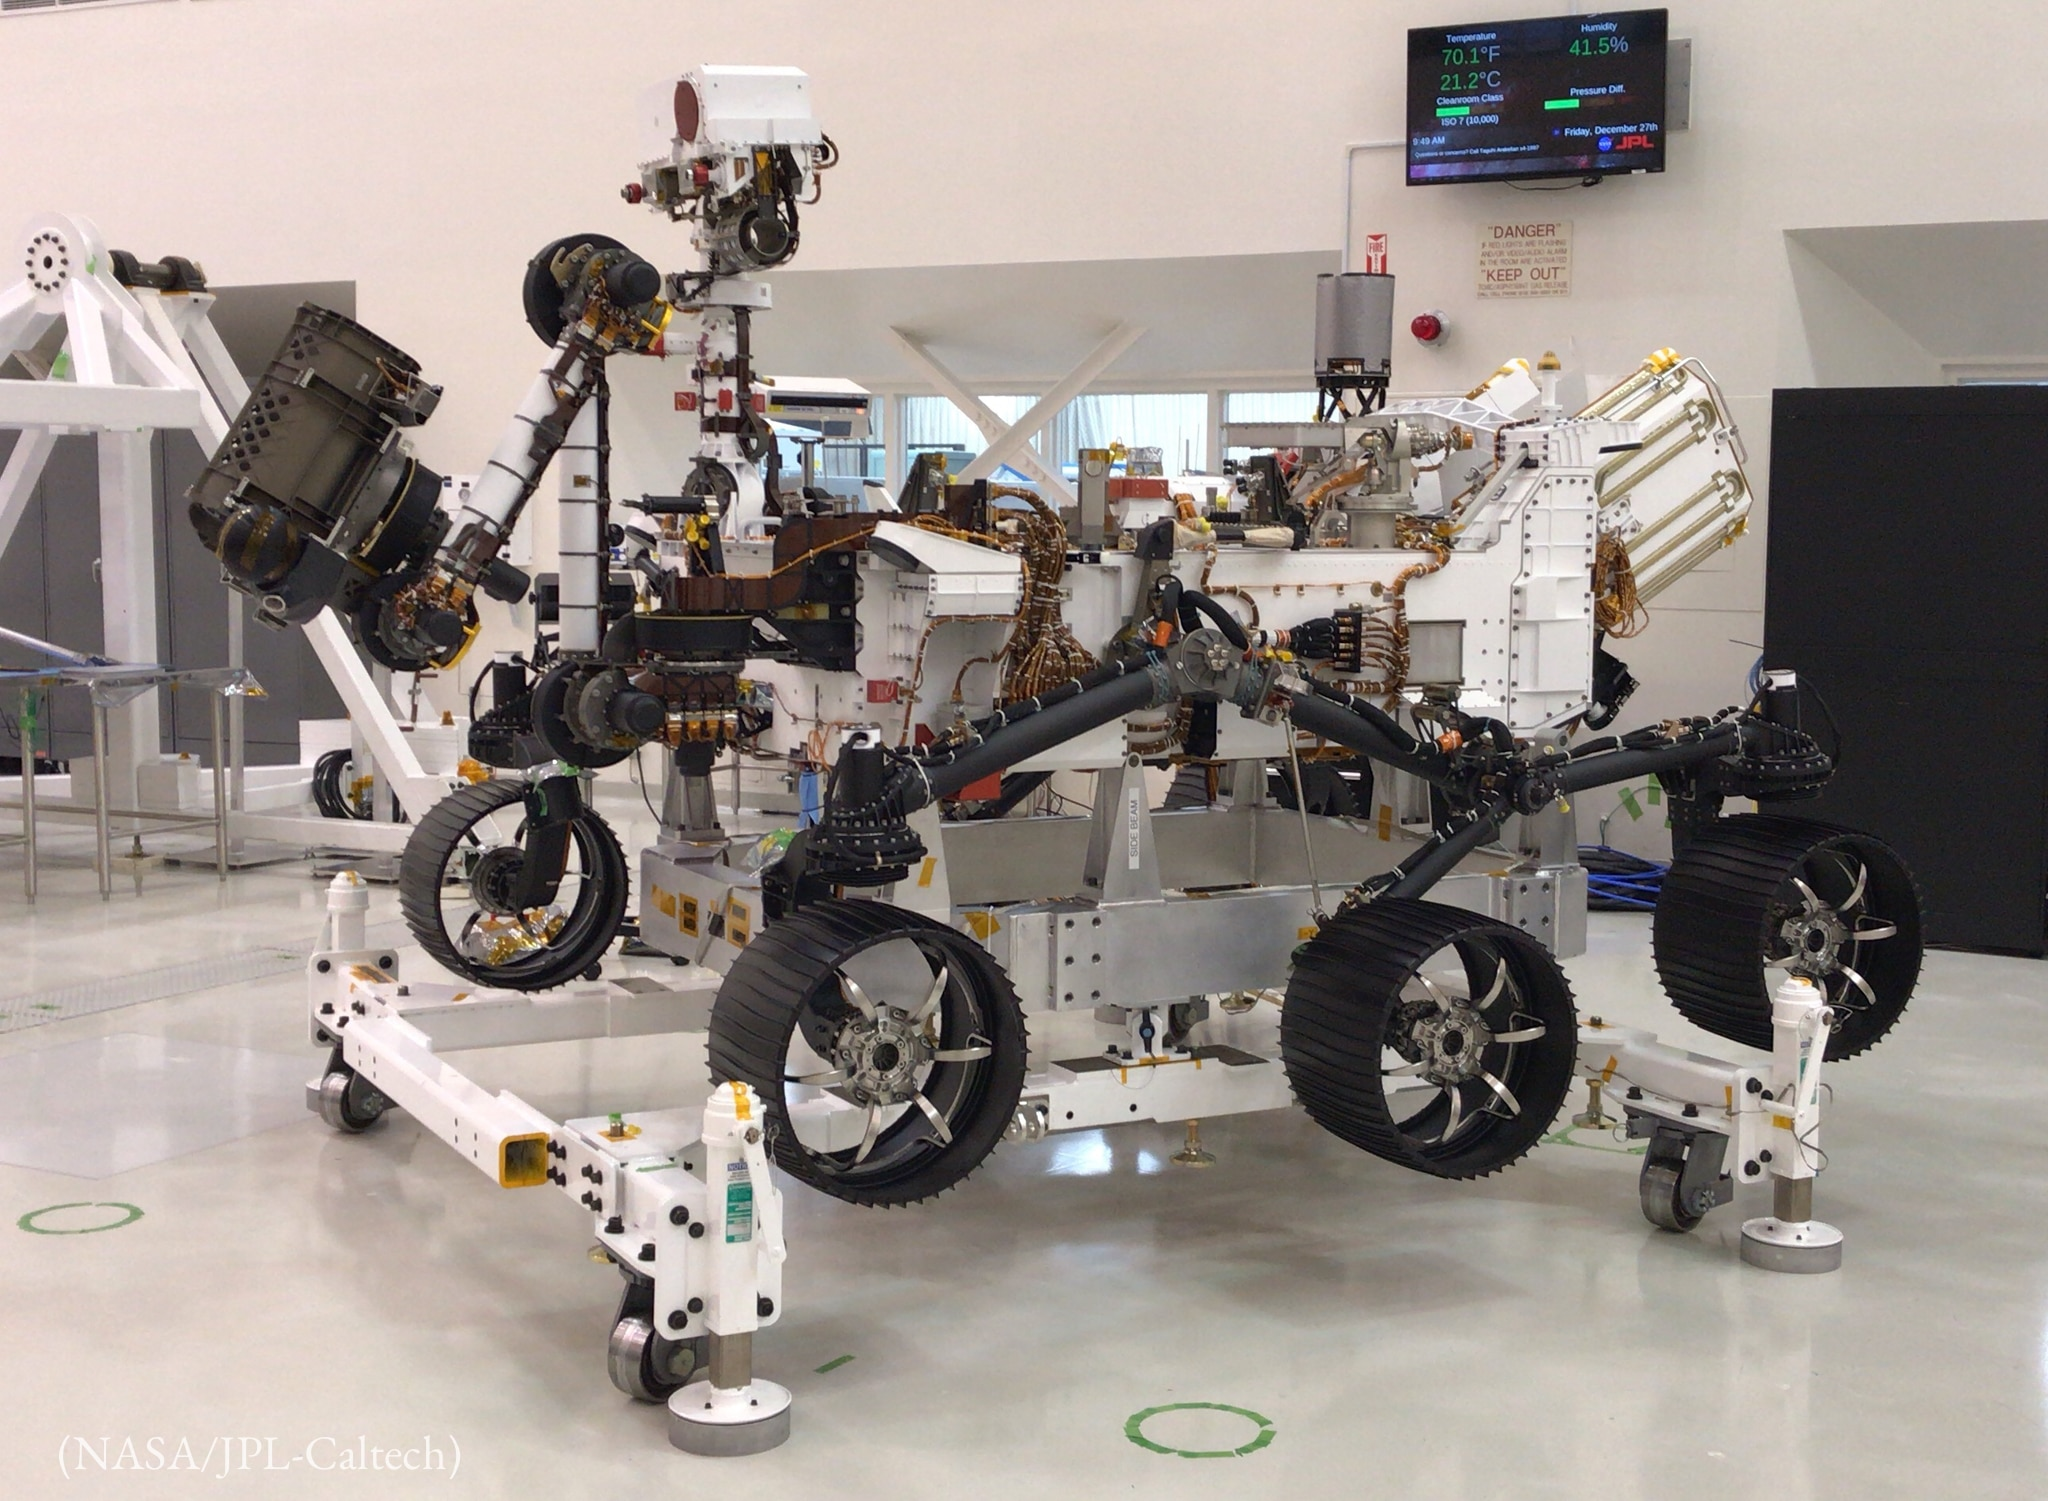 Wheeled machine sitting in room (NASA/JPL-Caltech)